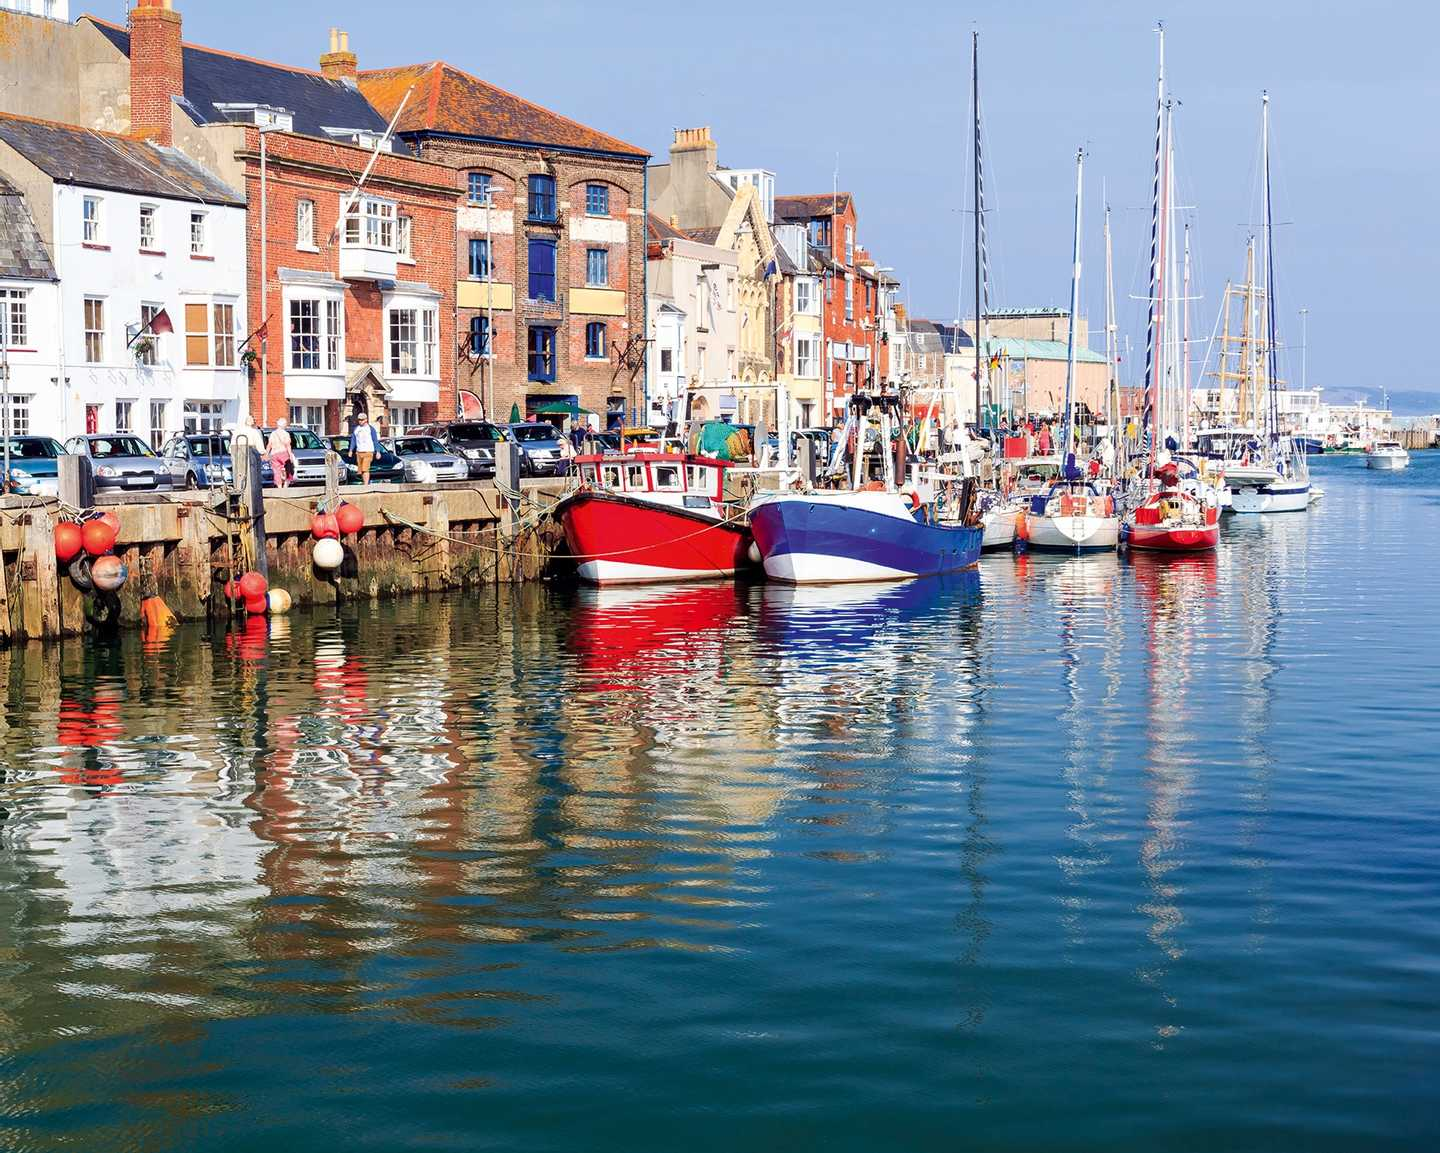 Colourful houses and boats along Weymouth Harbour